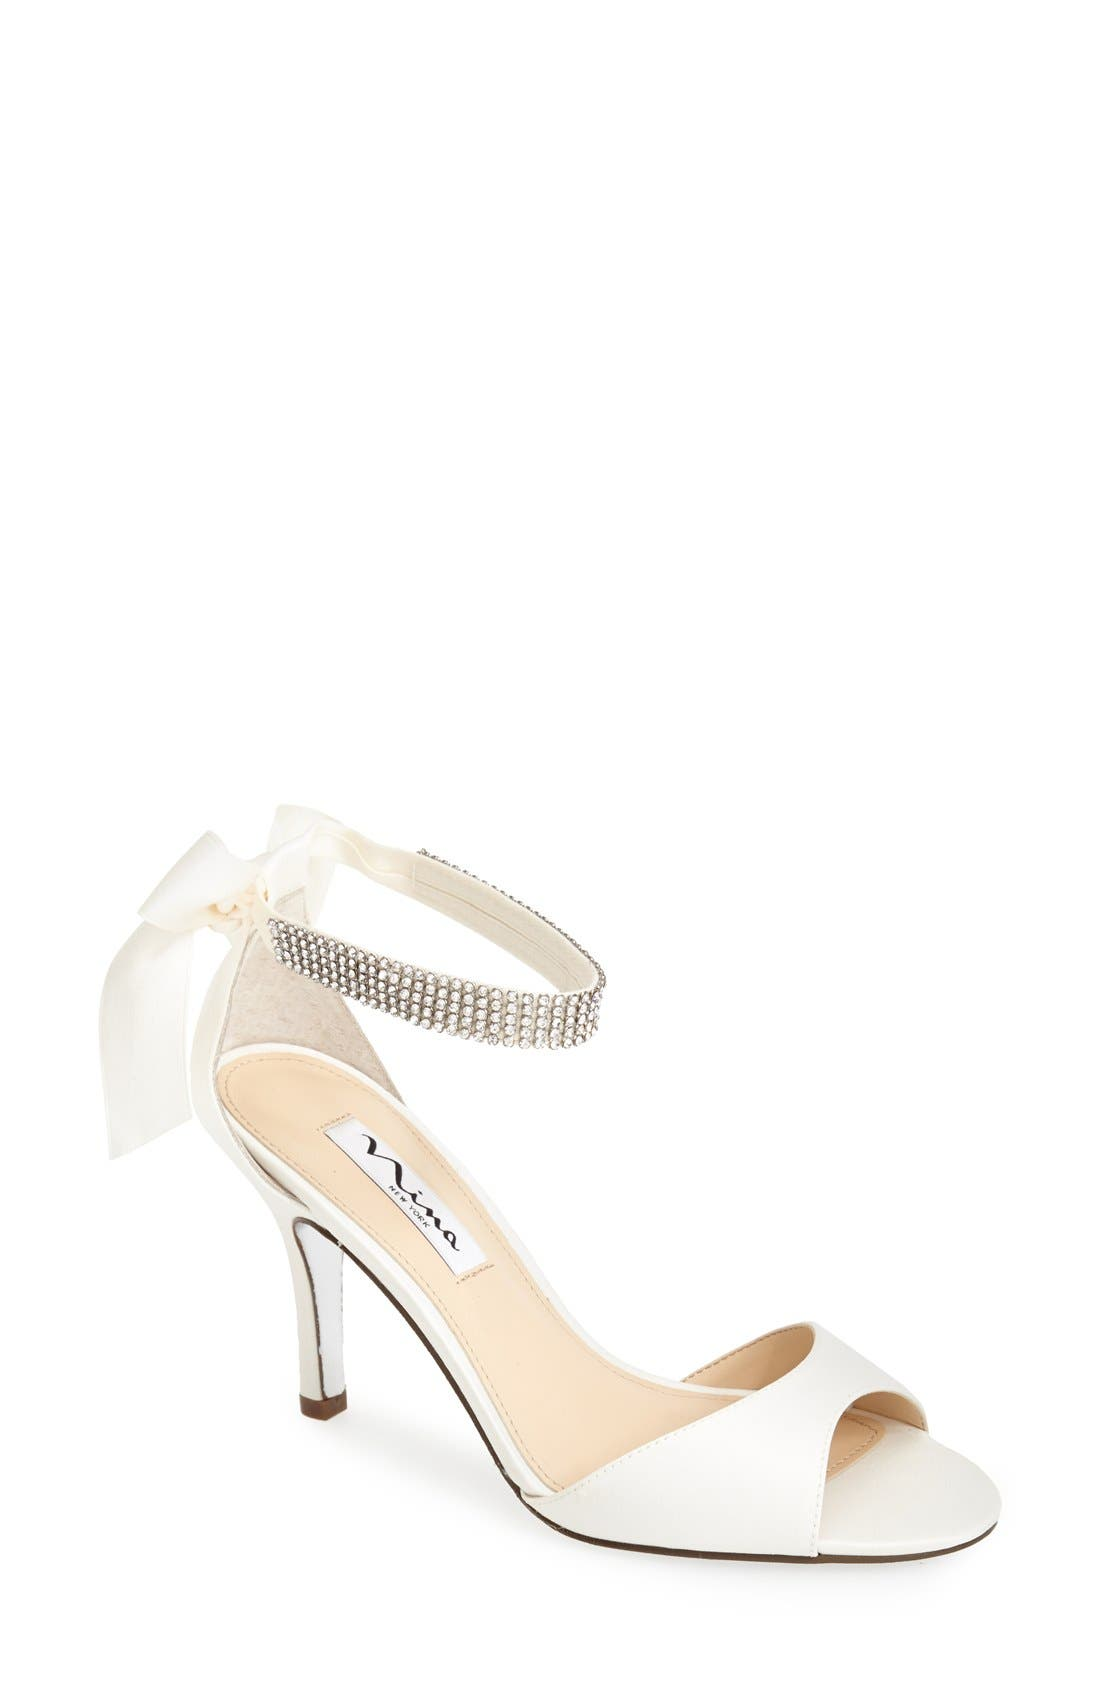 'Vinnie' Crystal Embellished Ankle Strap Sandal,                         Main,                         color, IVORY